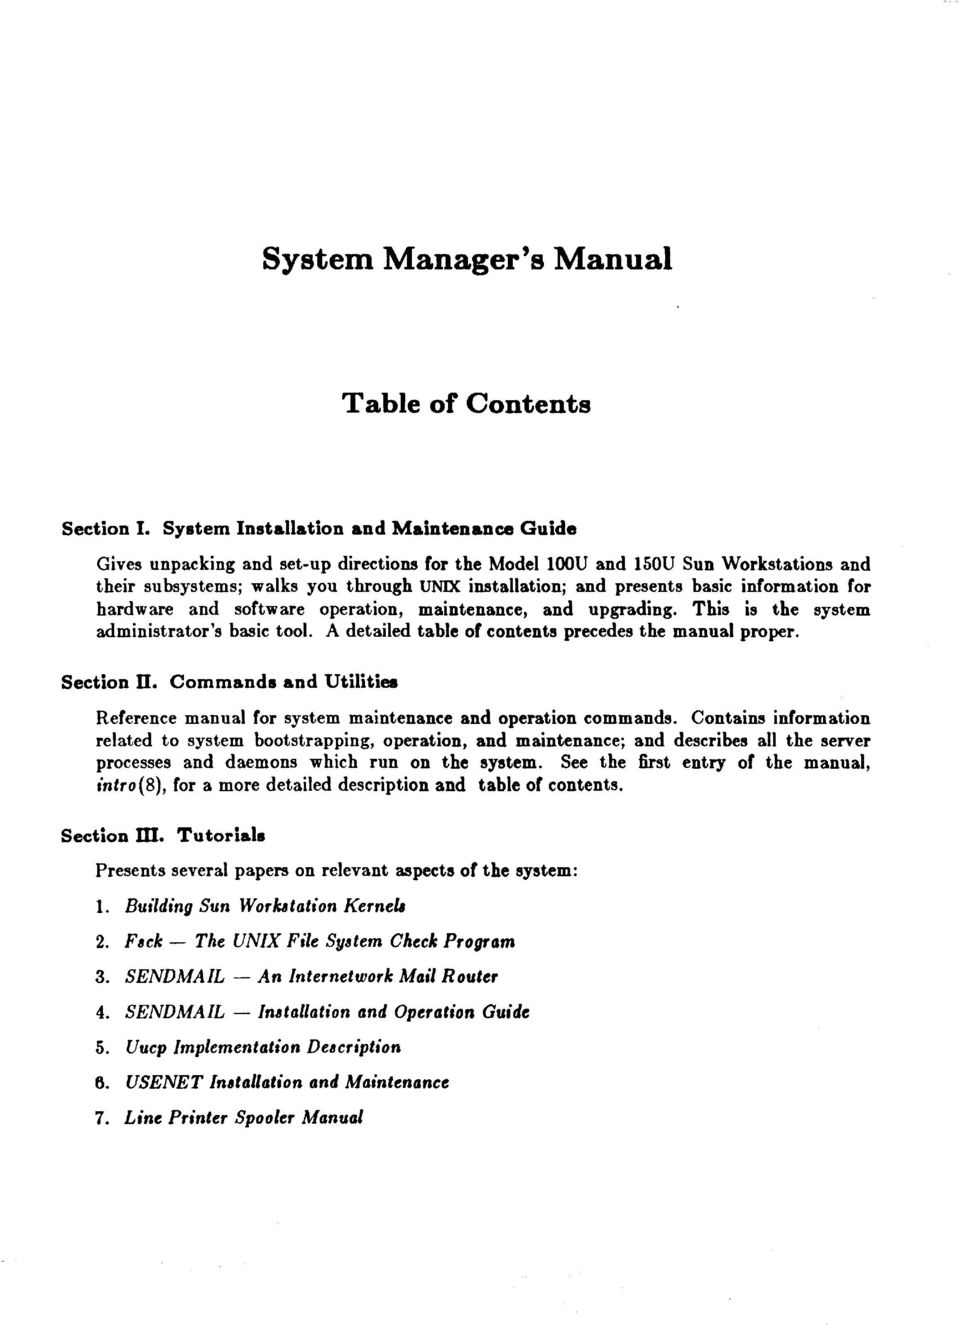 basic information for hardware and software operation, maintenance, and upgrading. This is the system administrator's basic tool. A detailed table of contents precedes the manual proper. Section U.